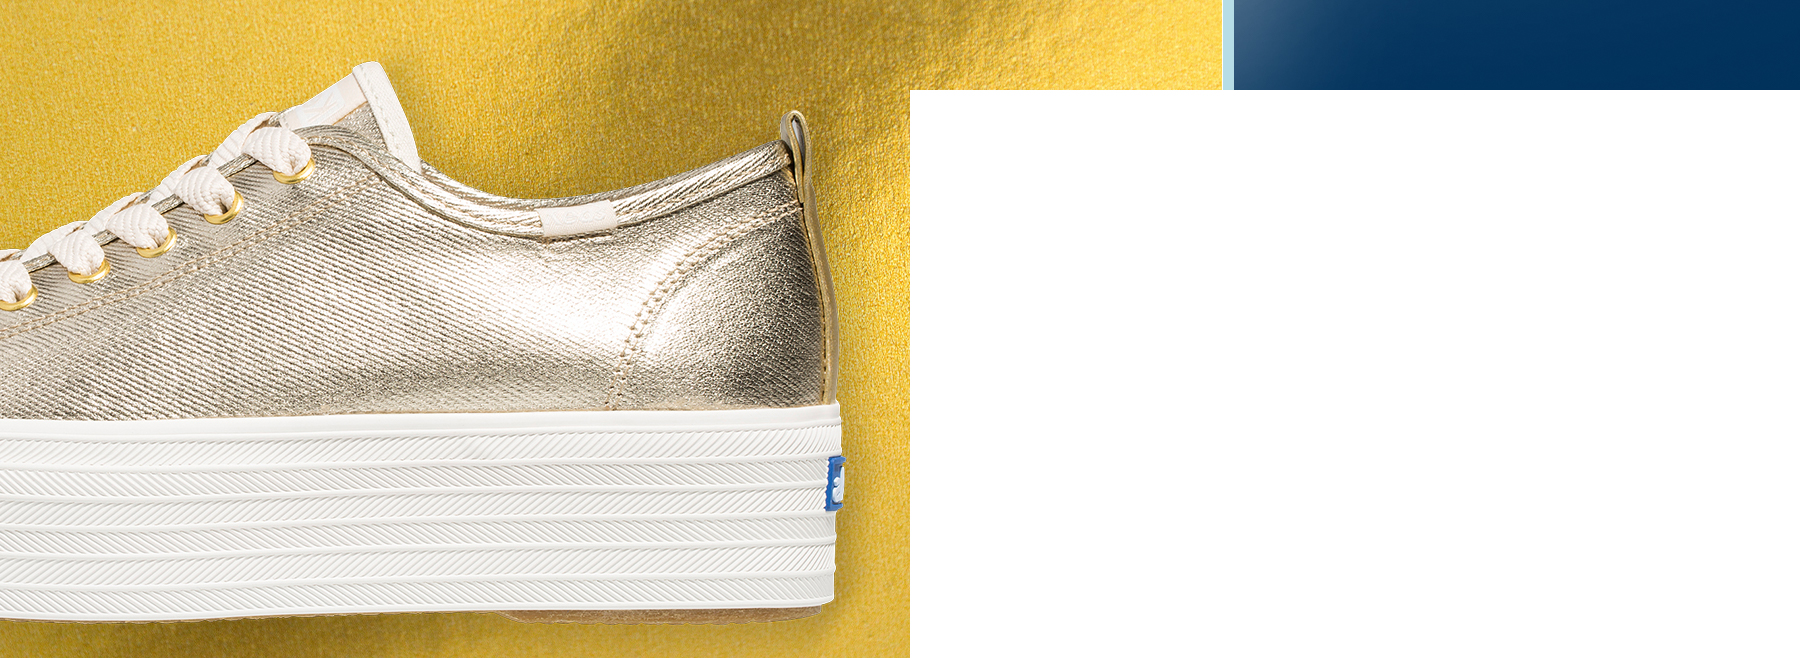 A close up side view of the Keds x Wonder Woman Triple Up Metallic golden shoe.